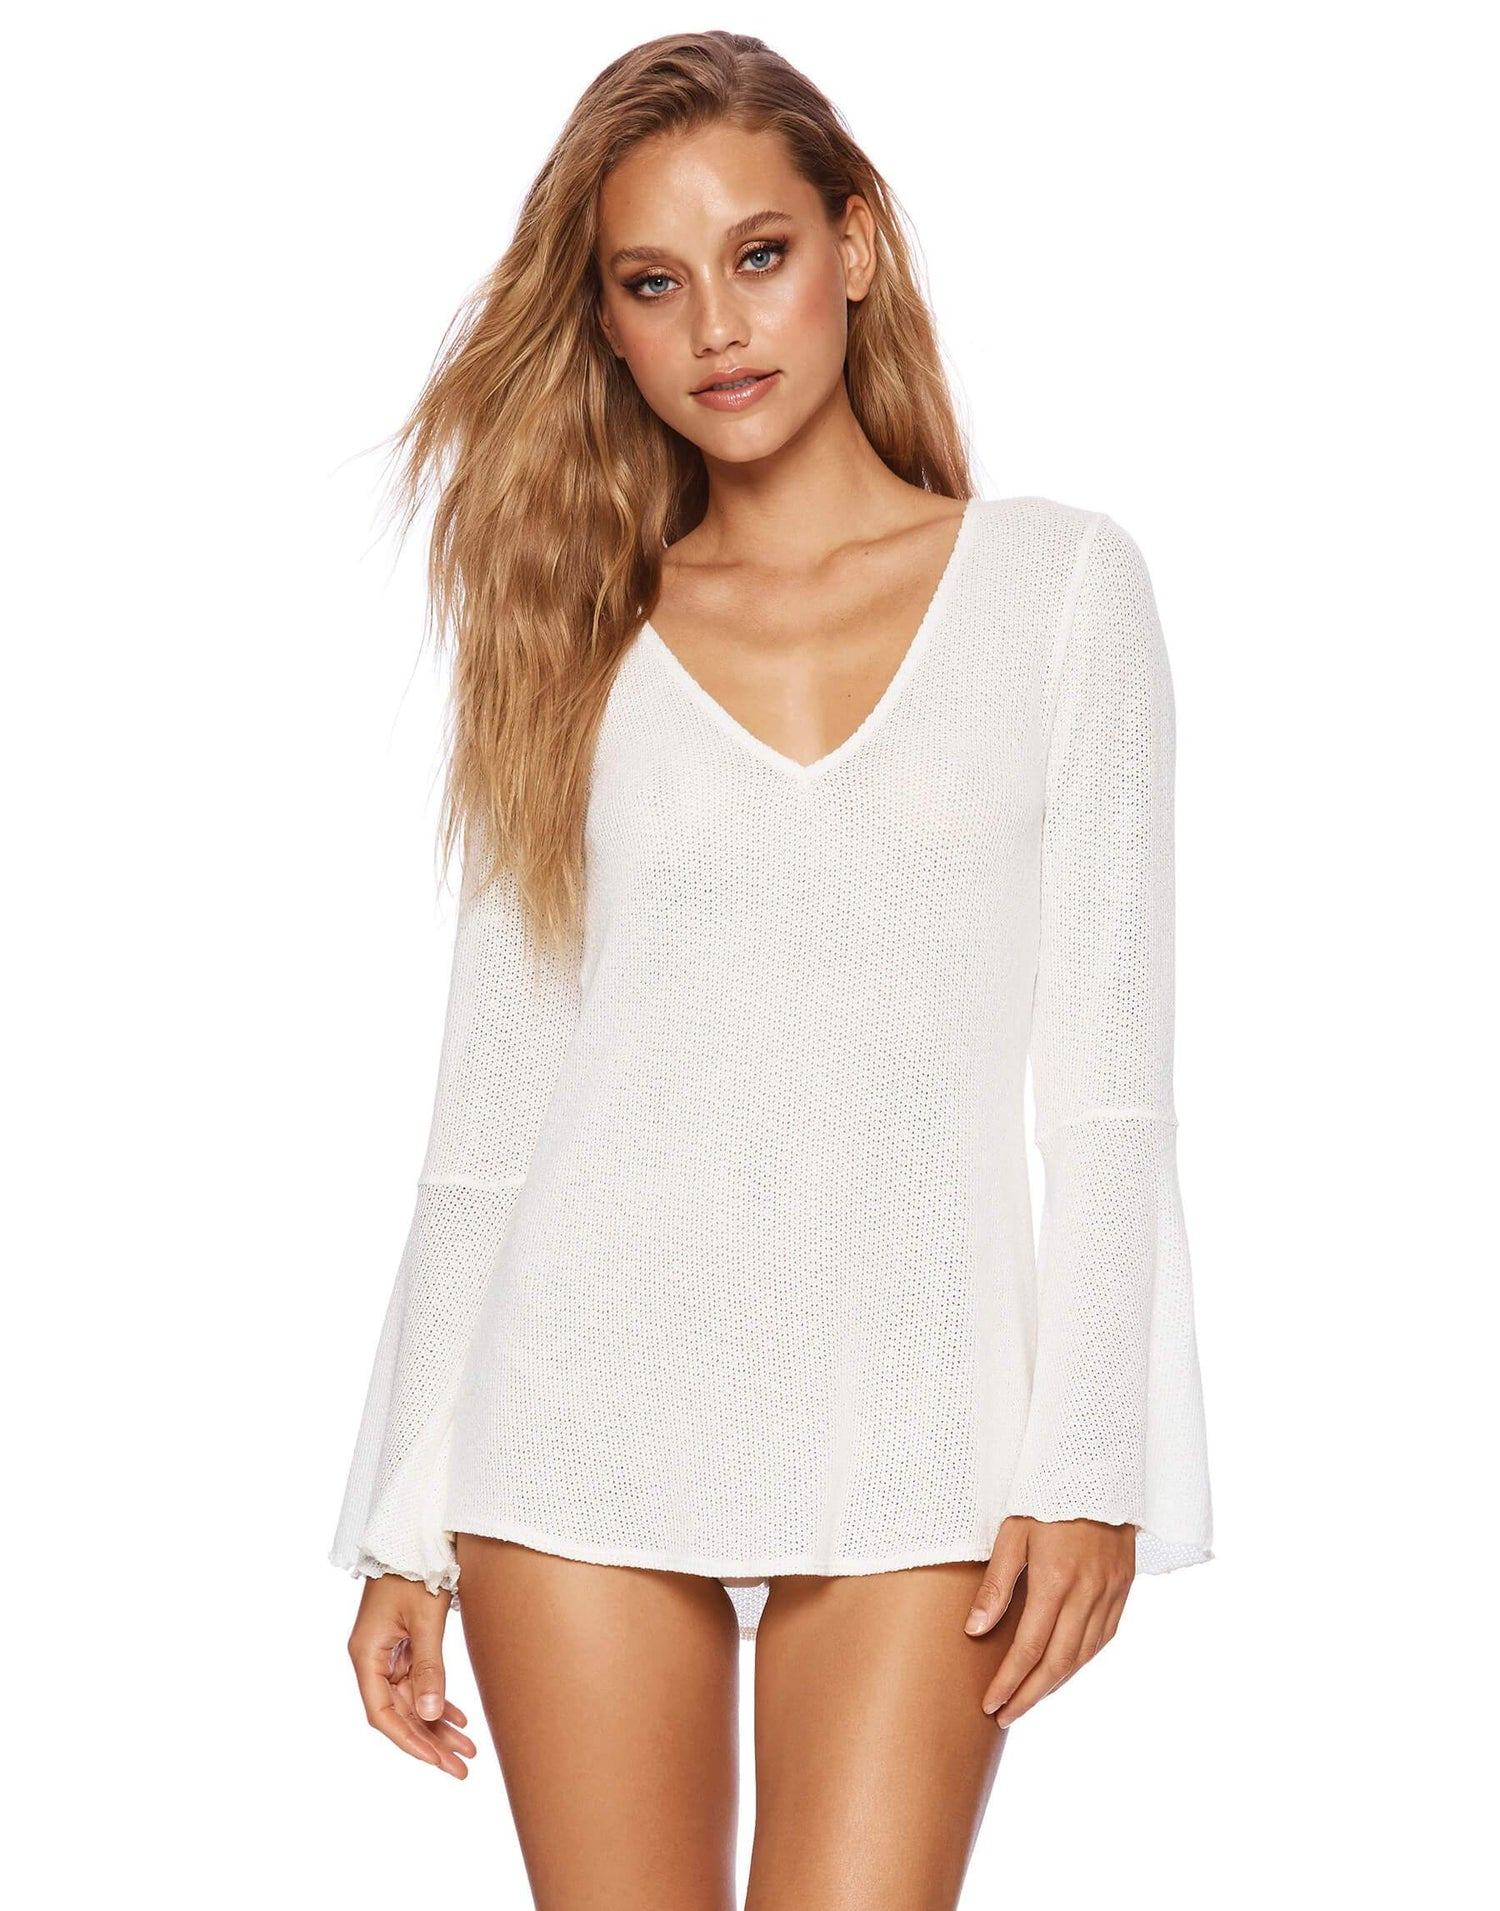 Annika Ivory Long Bell Sleeved Top - front view